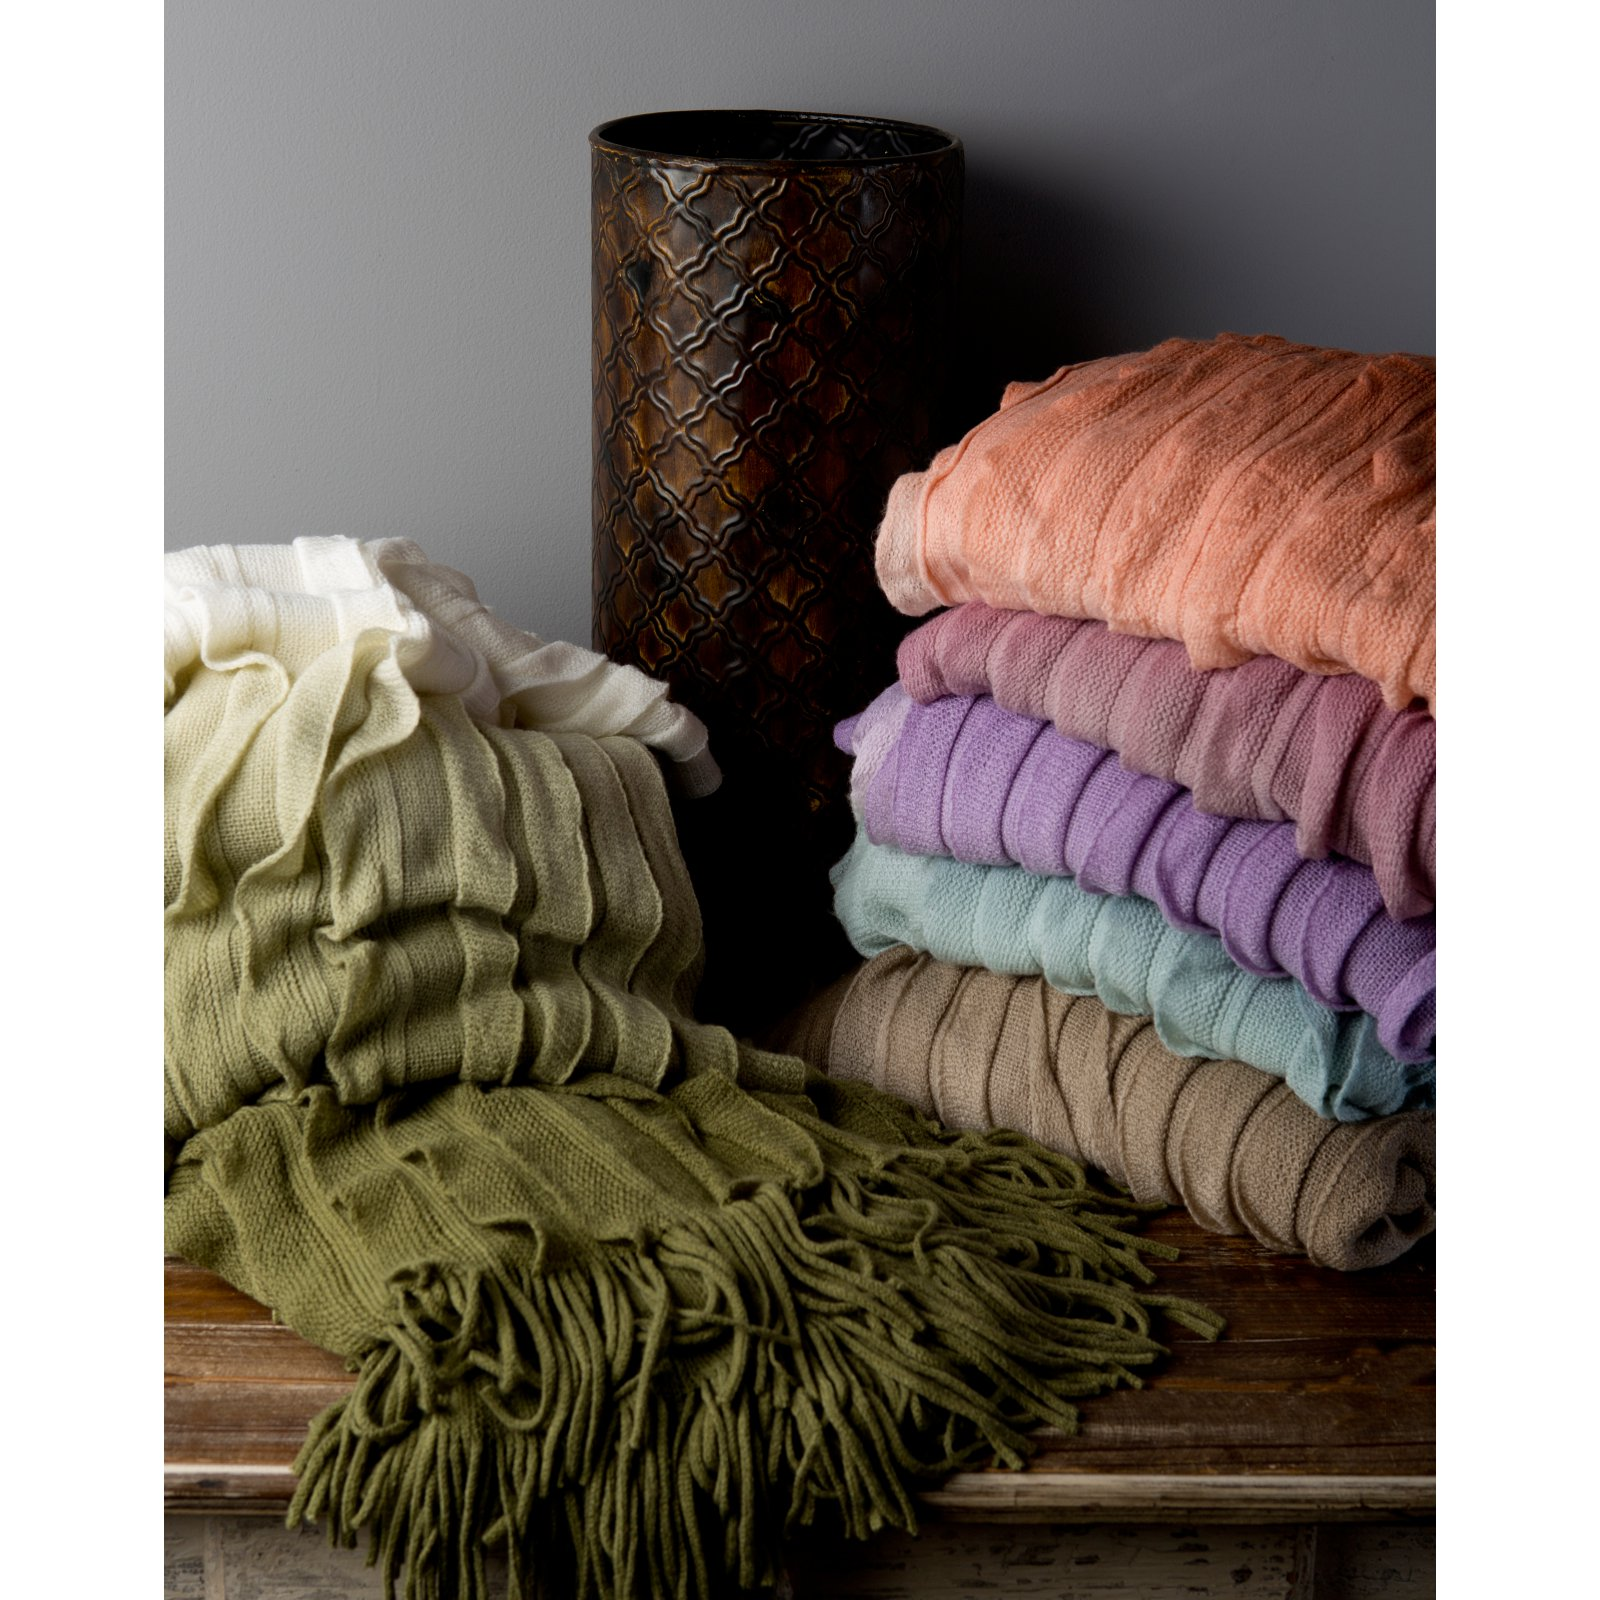 Surya Toya Ombre Throw - 50L x 60W in.